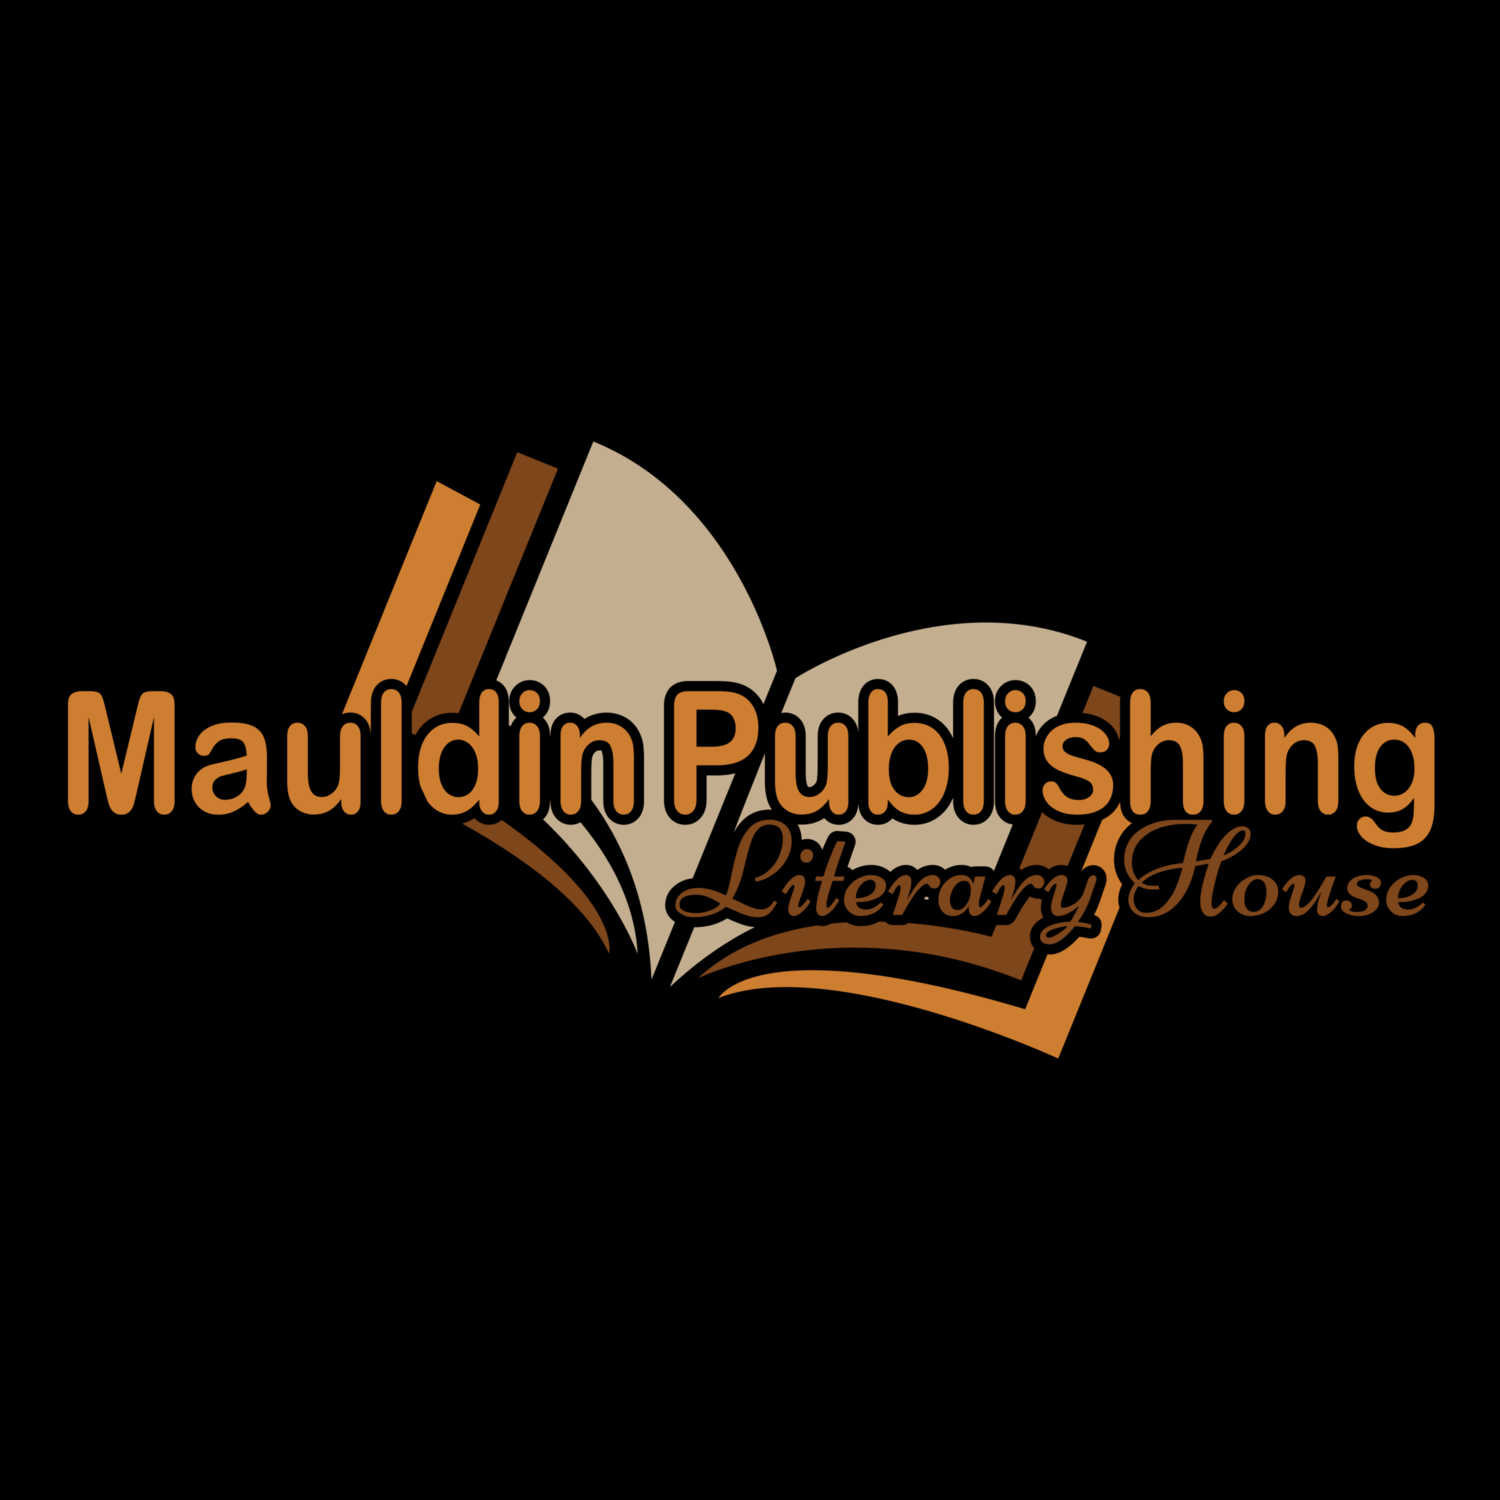 Official Site of Mauldin Publishing & Literacy House